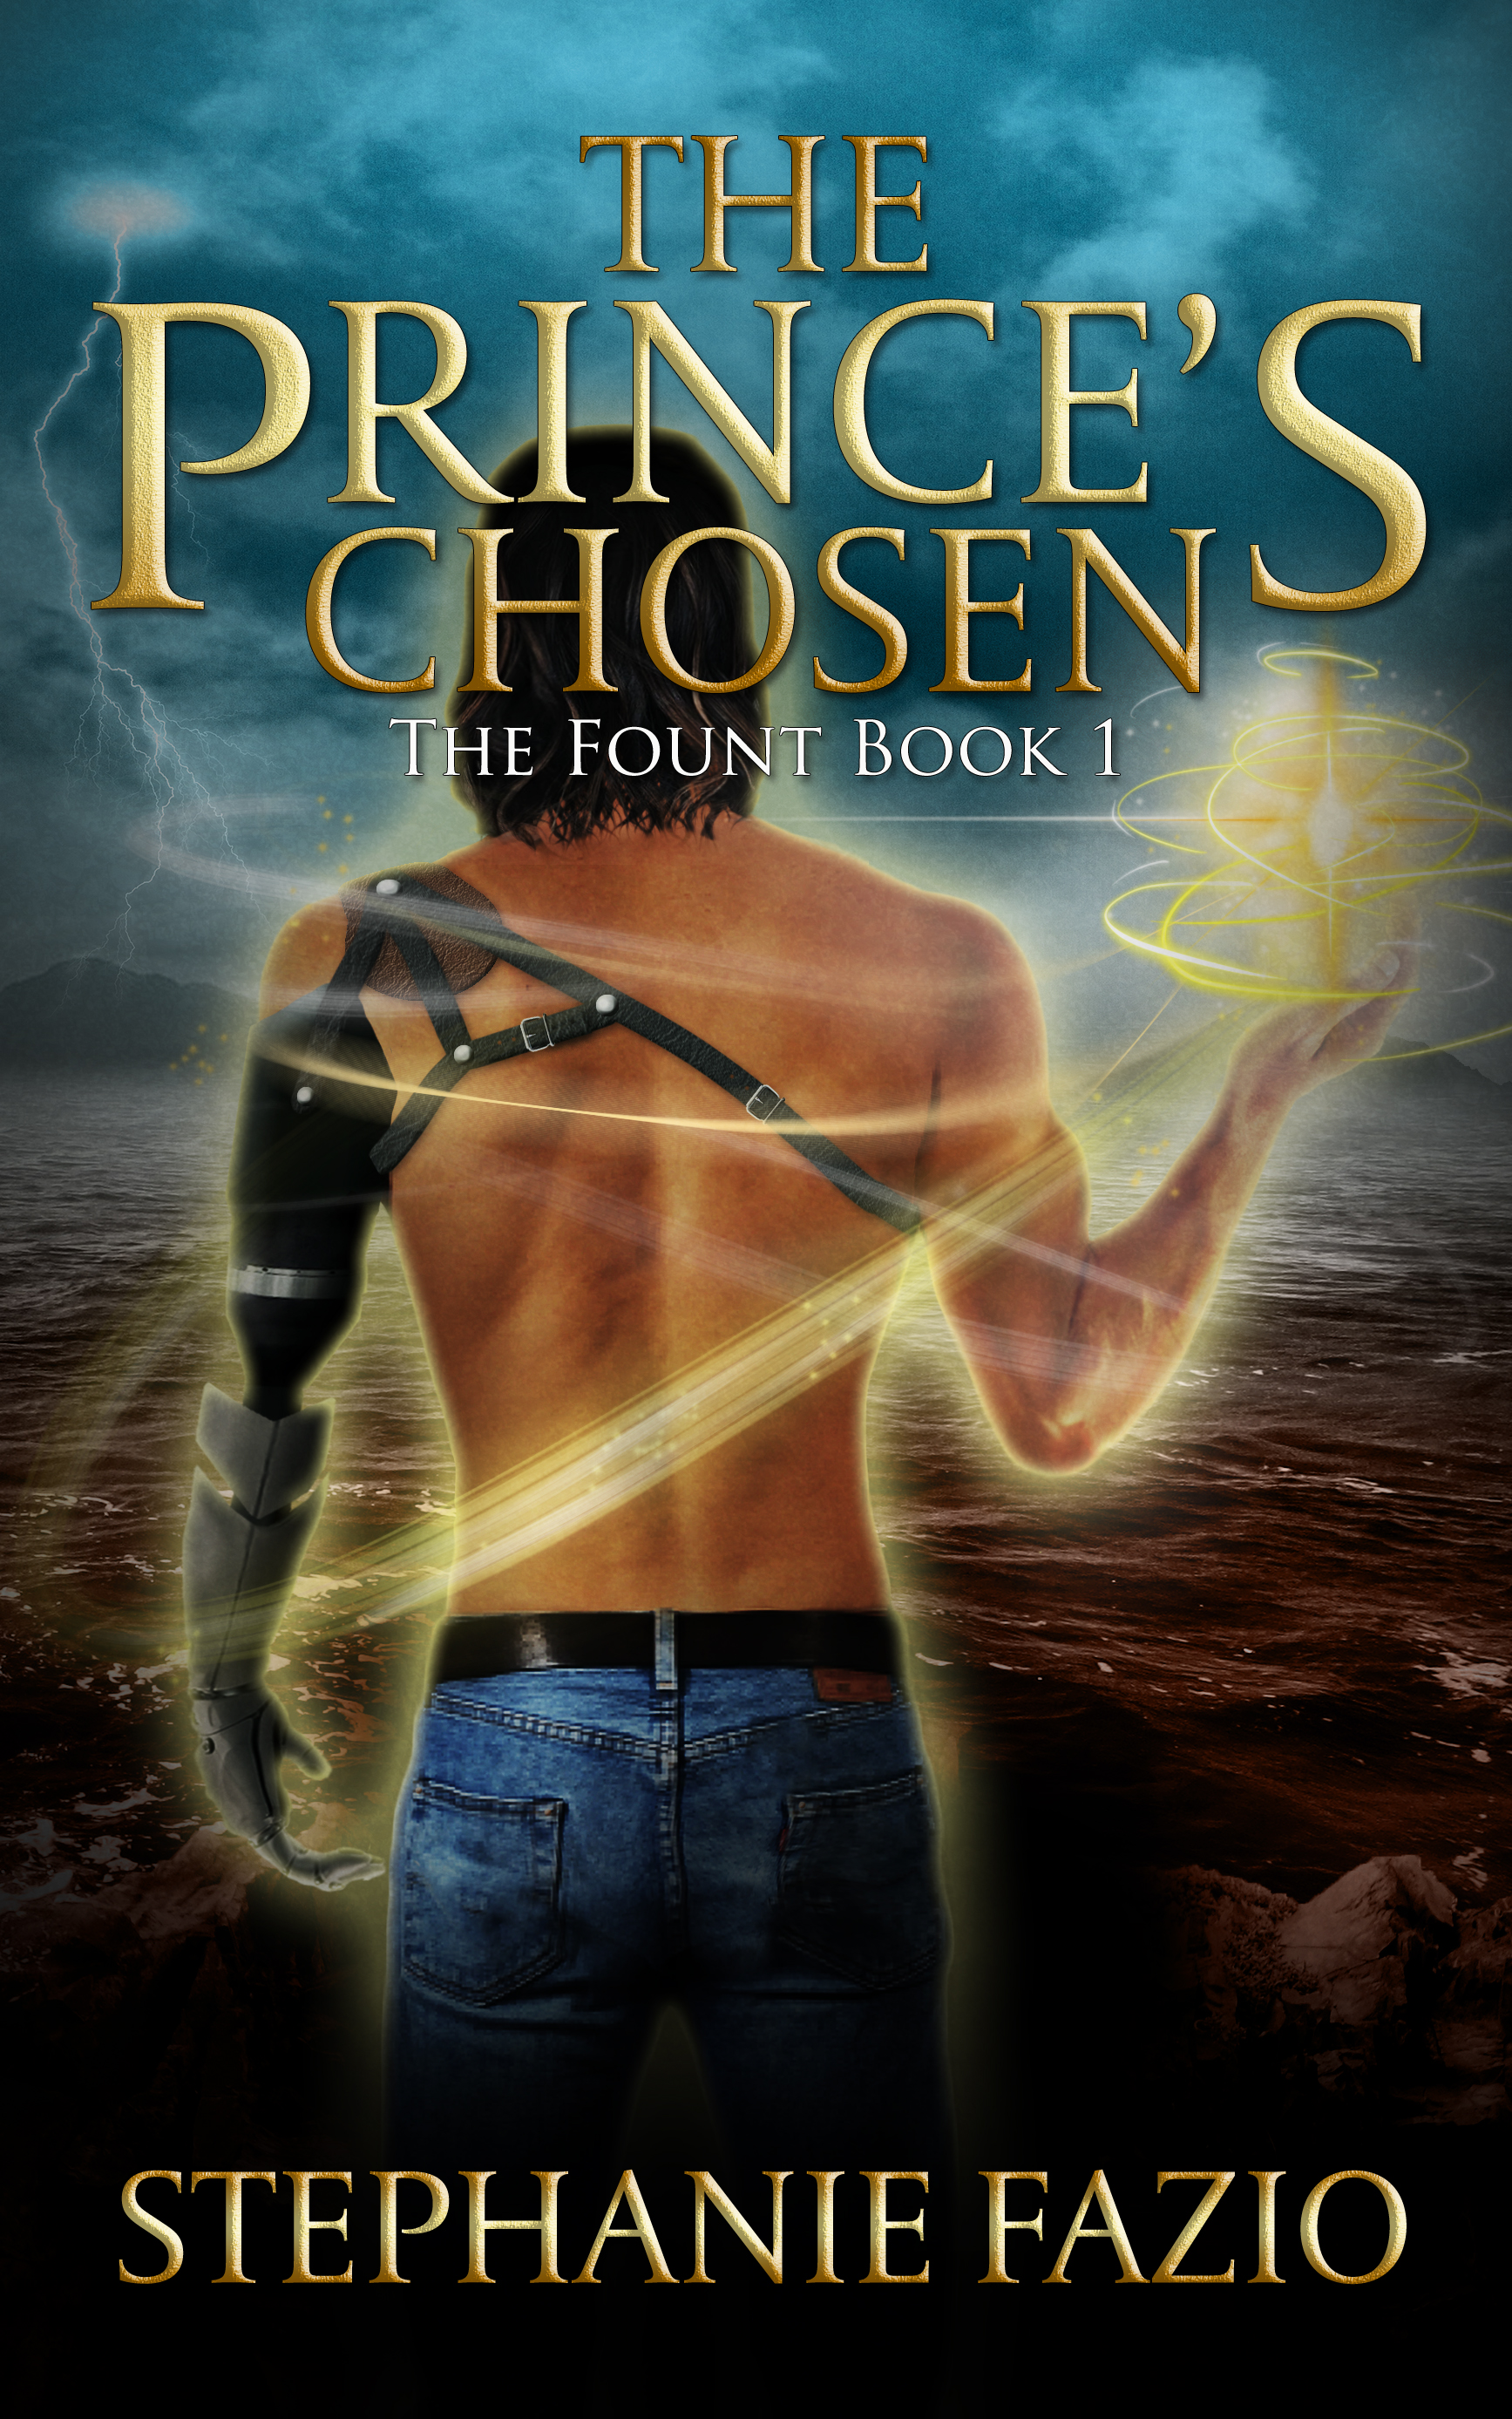 The Prince's Chosen (The Fount, #1)